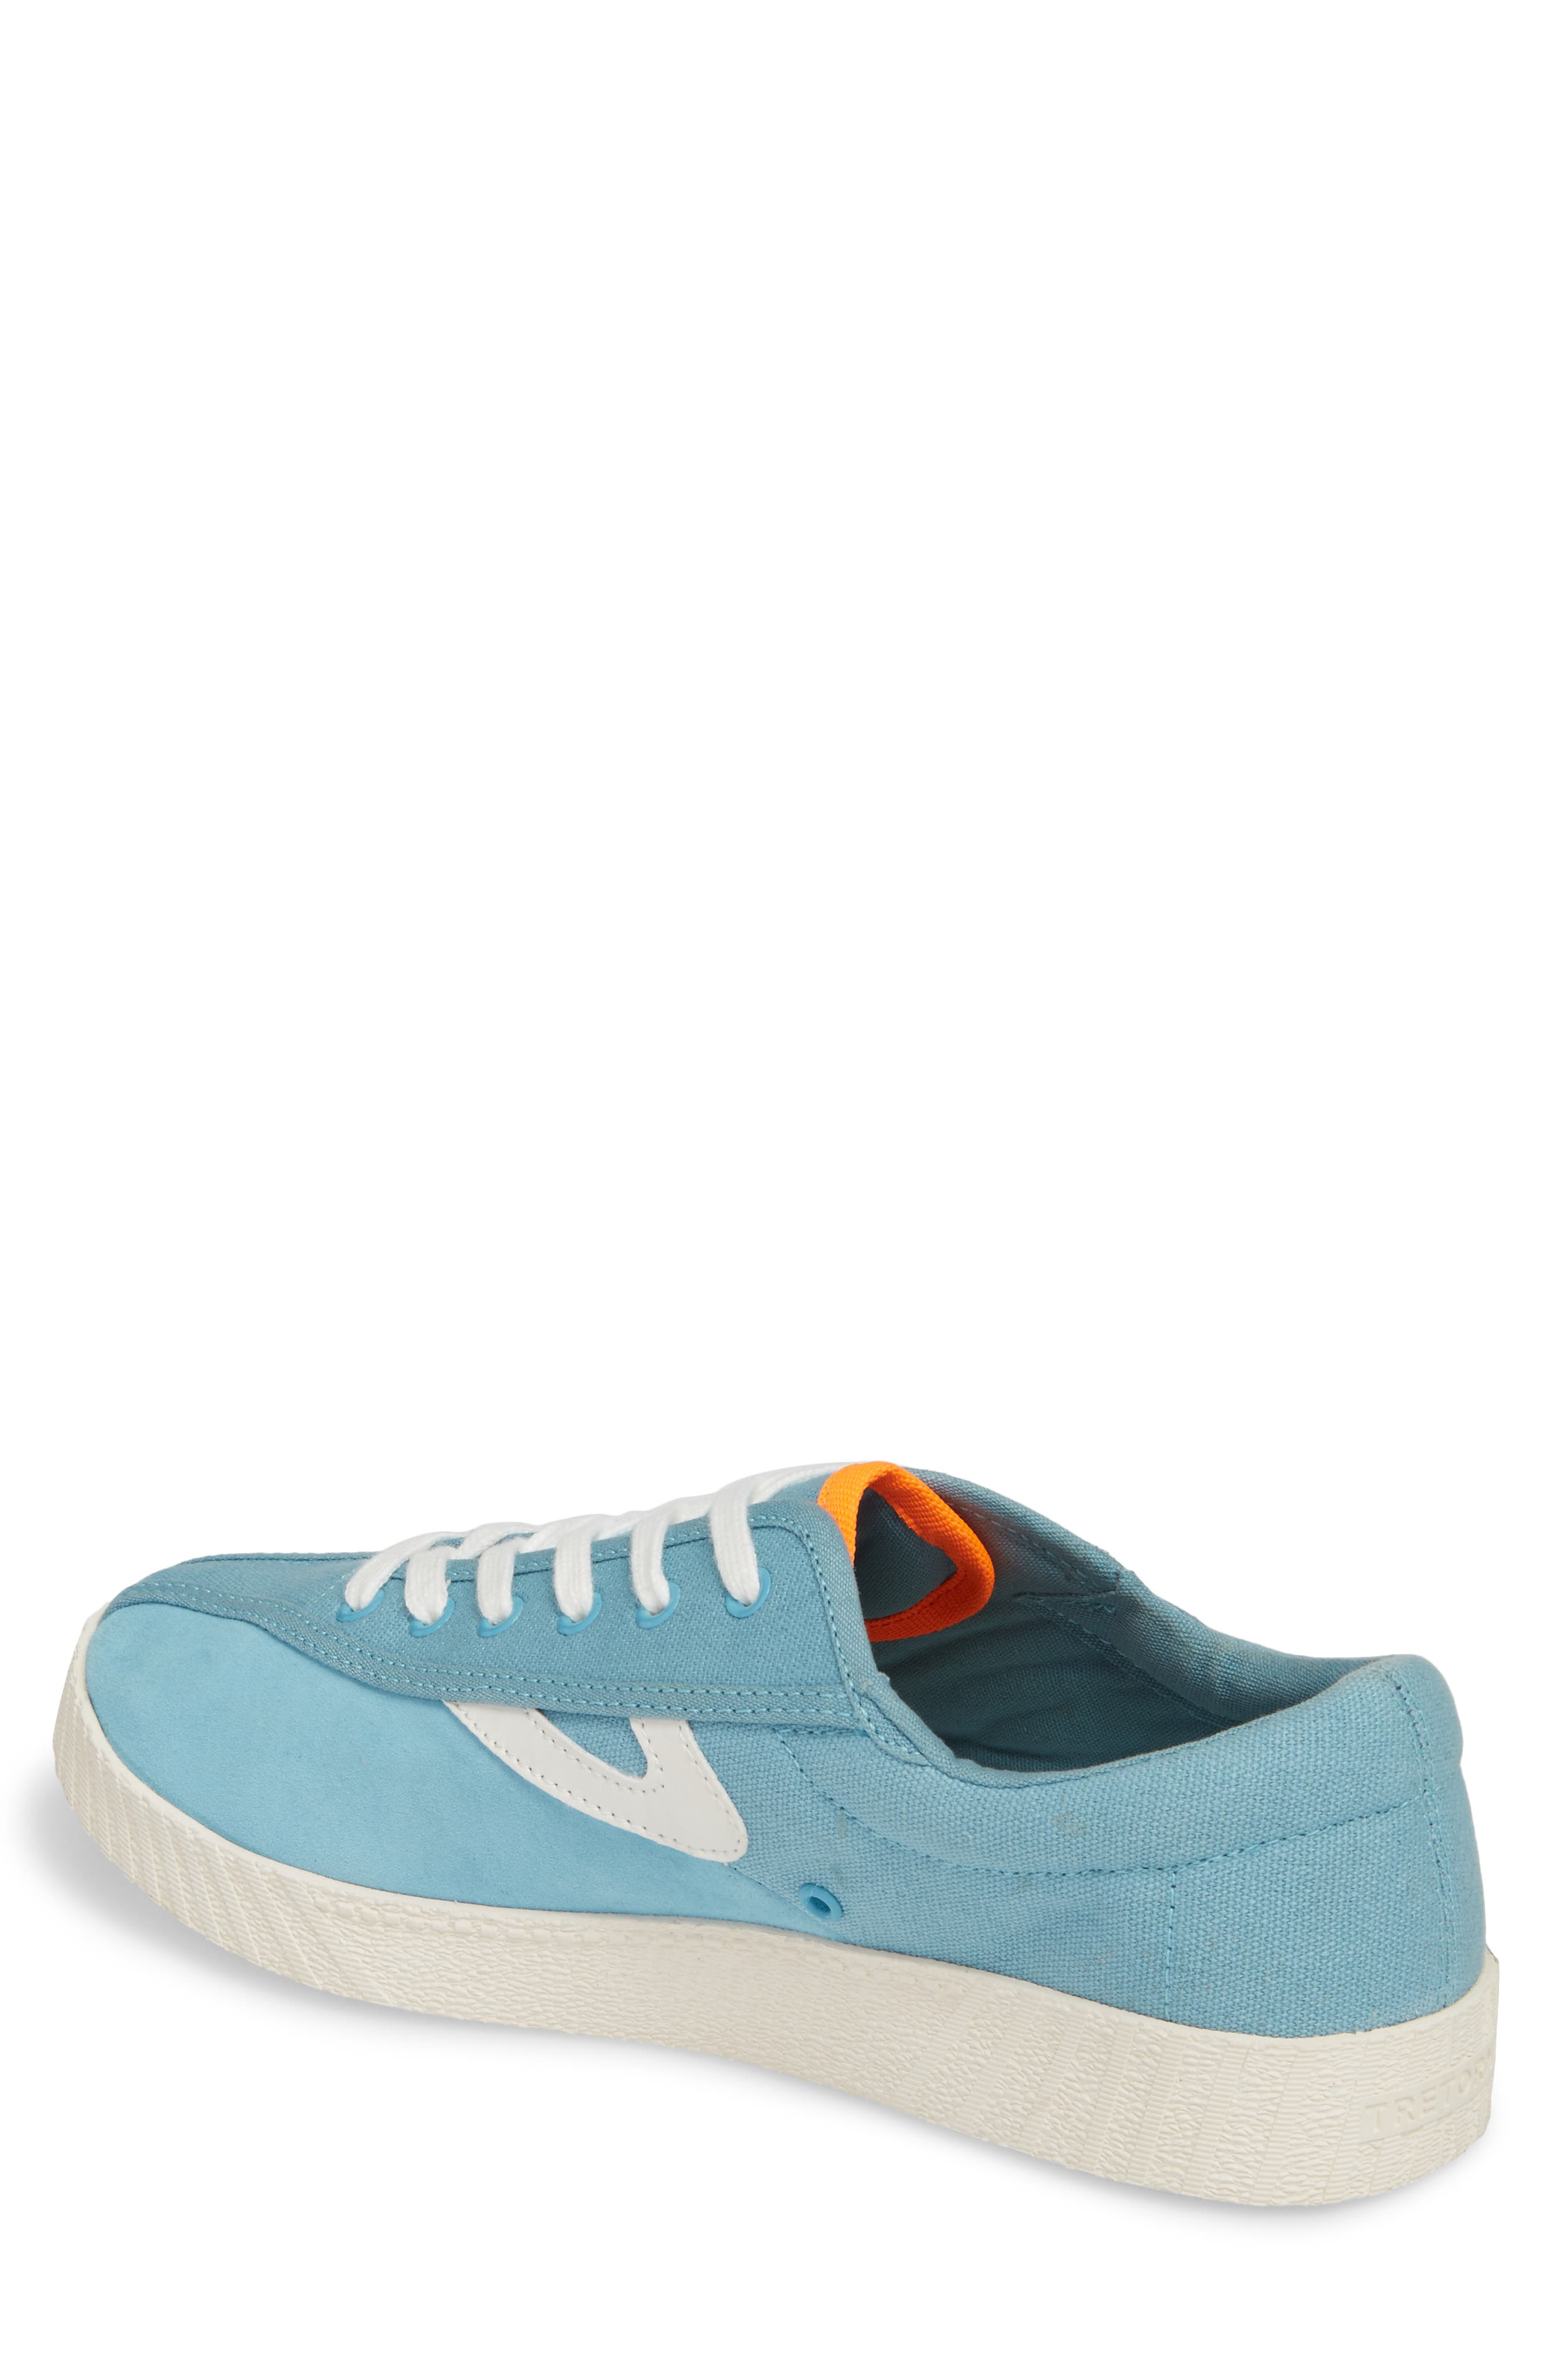 Andre 3000 Nylite Low Top Sneaker,                             Alternate thumbnail 2, color,                             BABY BLUE CANVAS